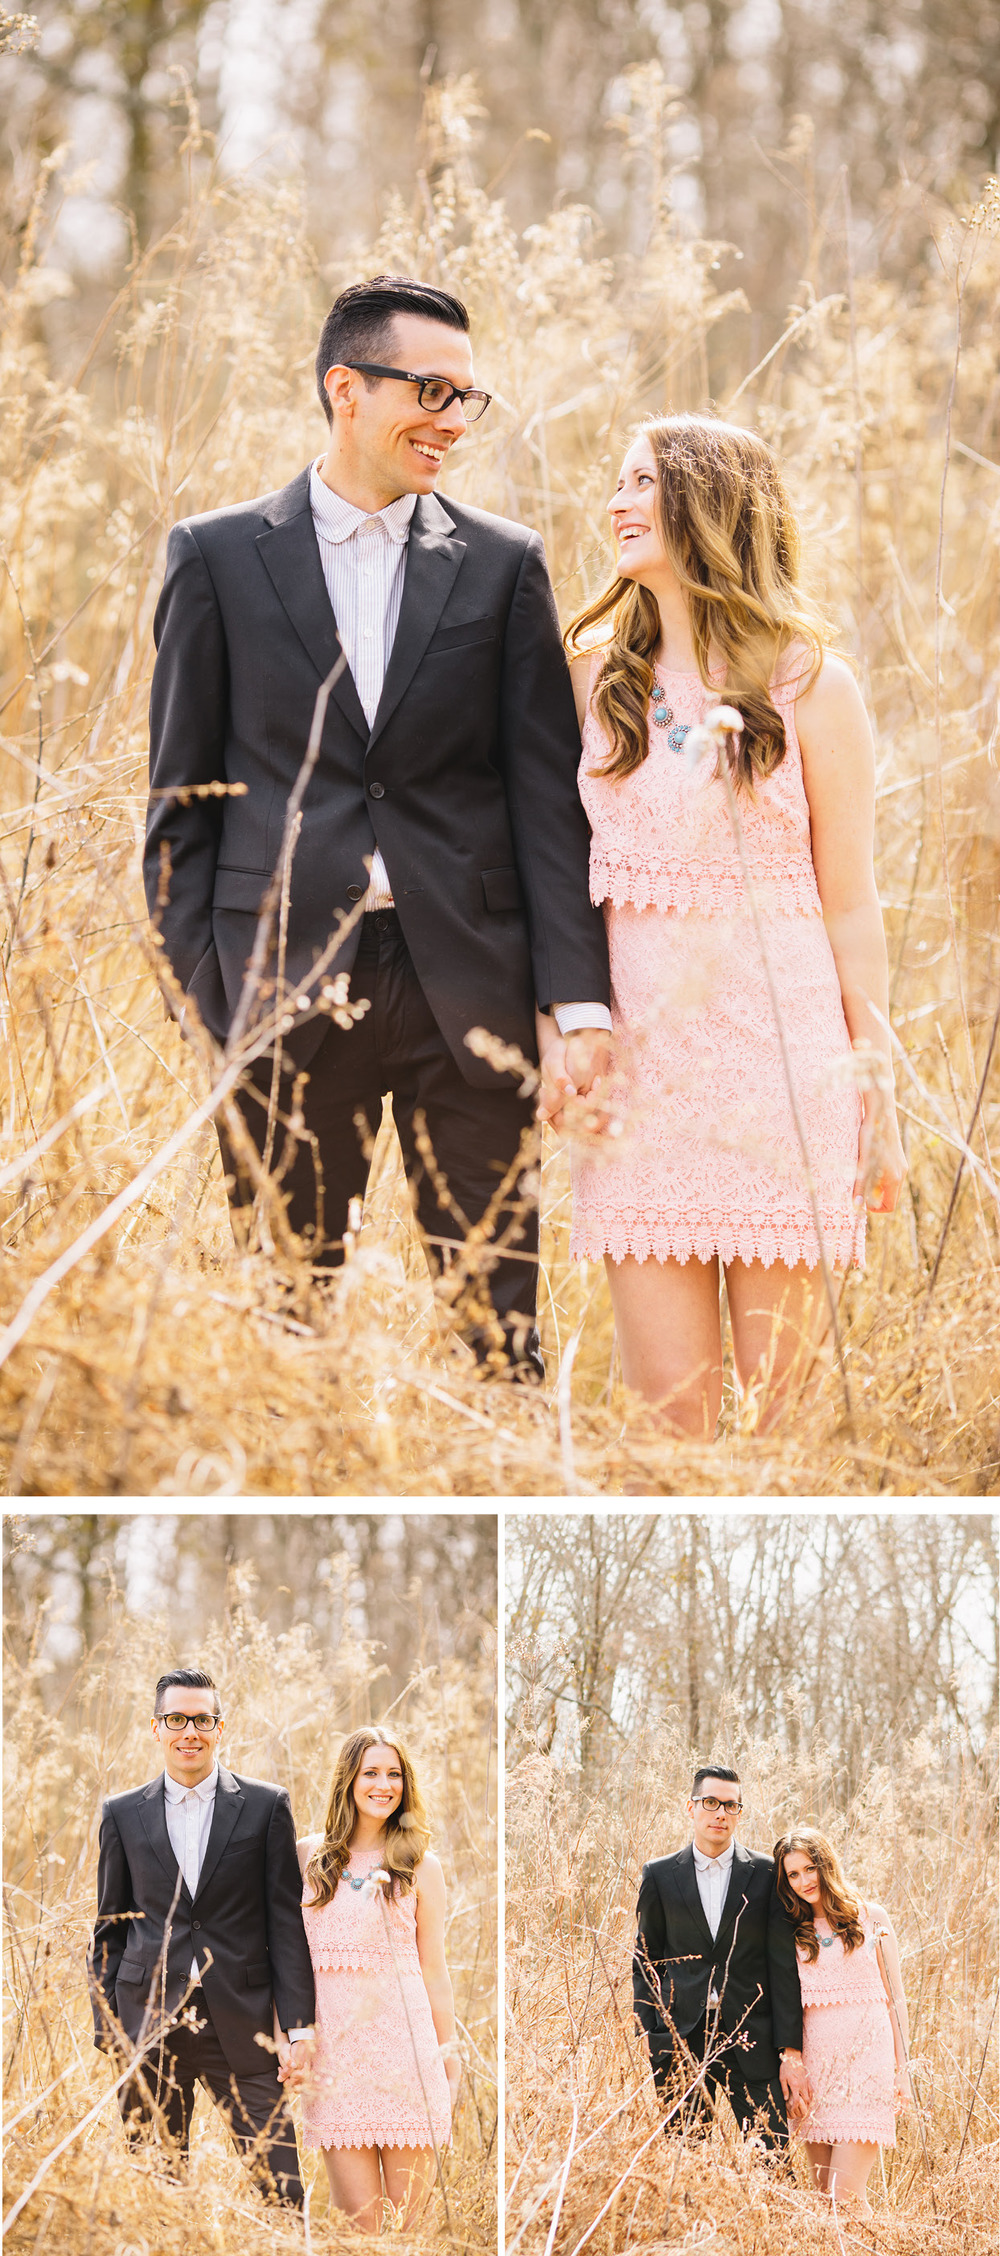 CK-Photo-Nashville-Wedding-Photographer-MB4.jpg